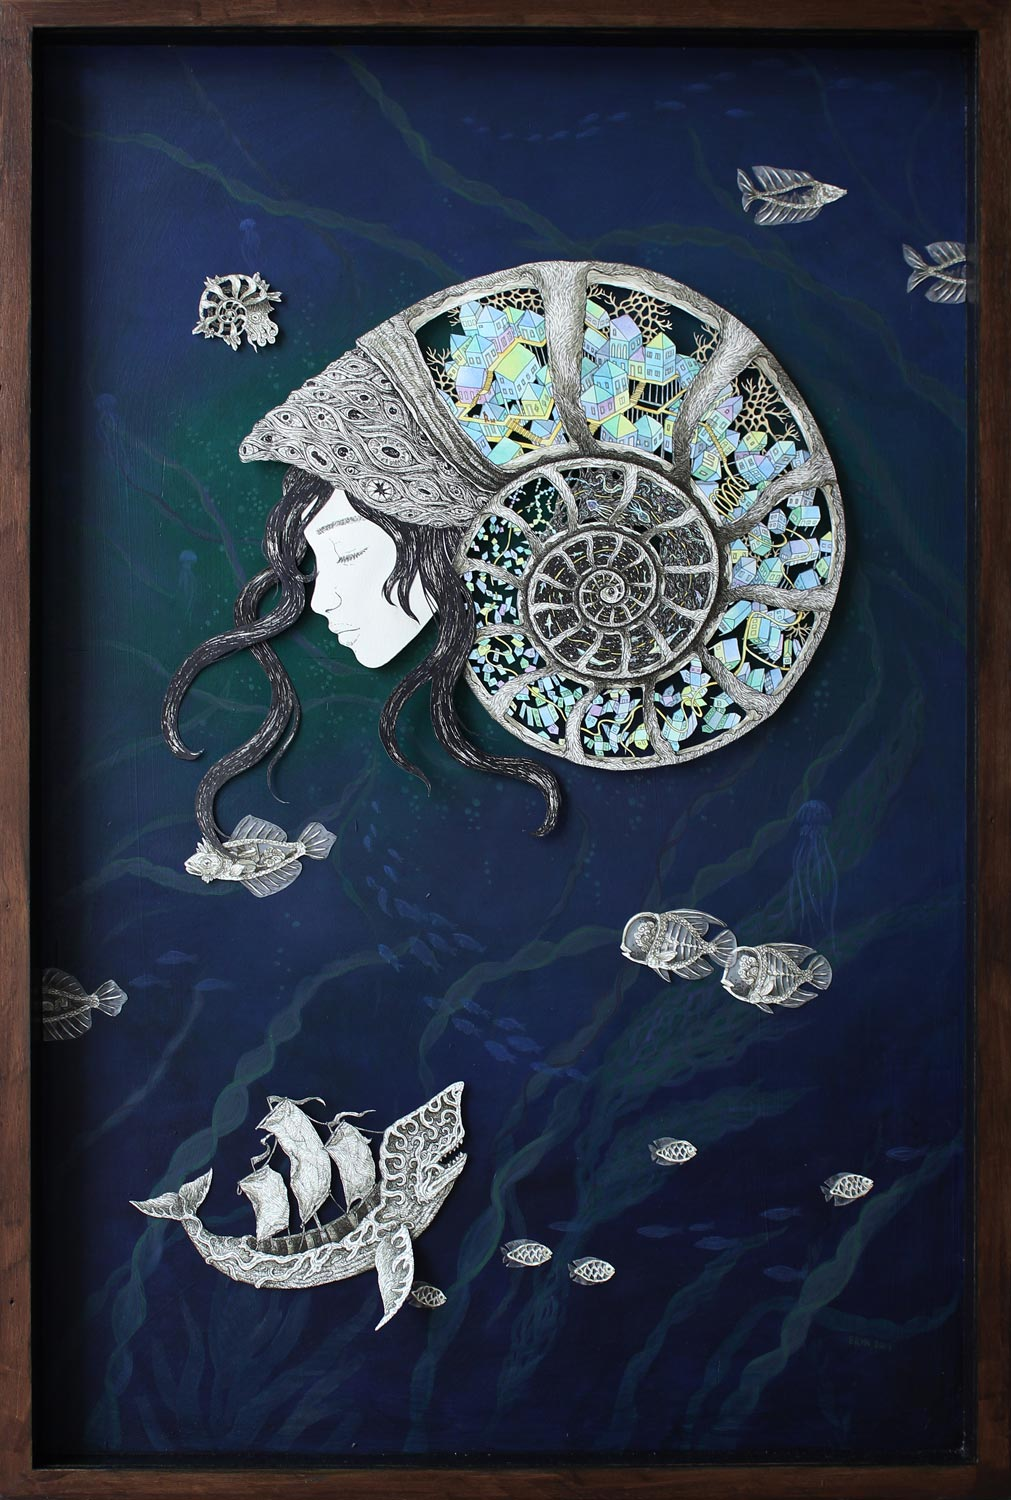 Memory , Staedtler pigment liner and watercolour on layered paper cutout & acrylic on wood, 92x61cm, 2015, ELUSIVE exhibition 2015, private collection